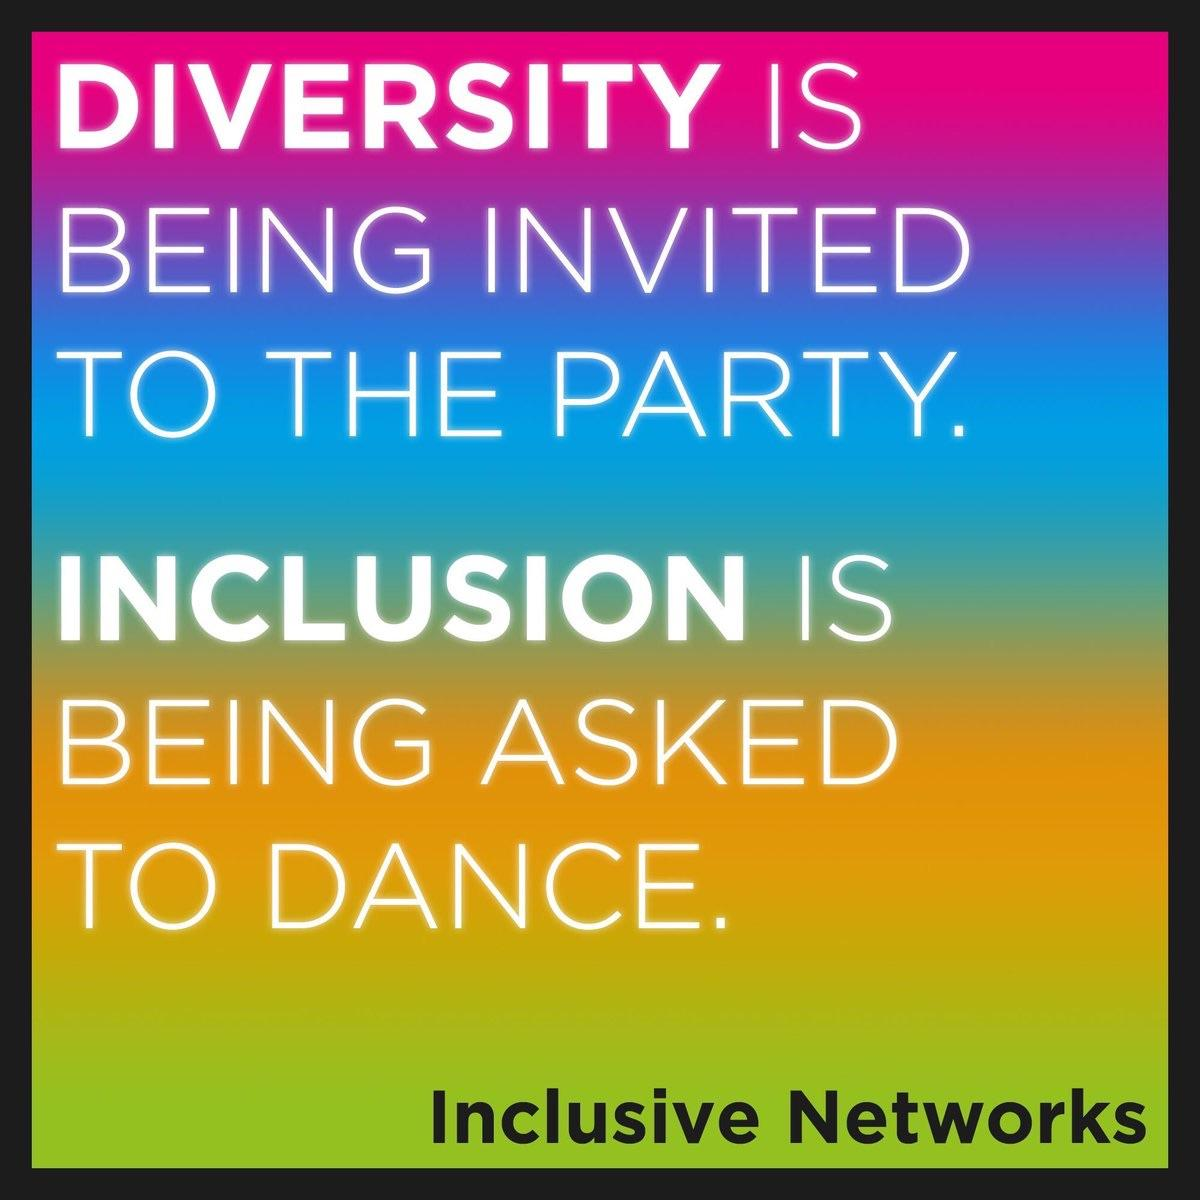 DIVERSITY IS ,3. . * ,L. T. , l, https://inspirational.ly